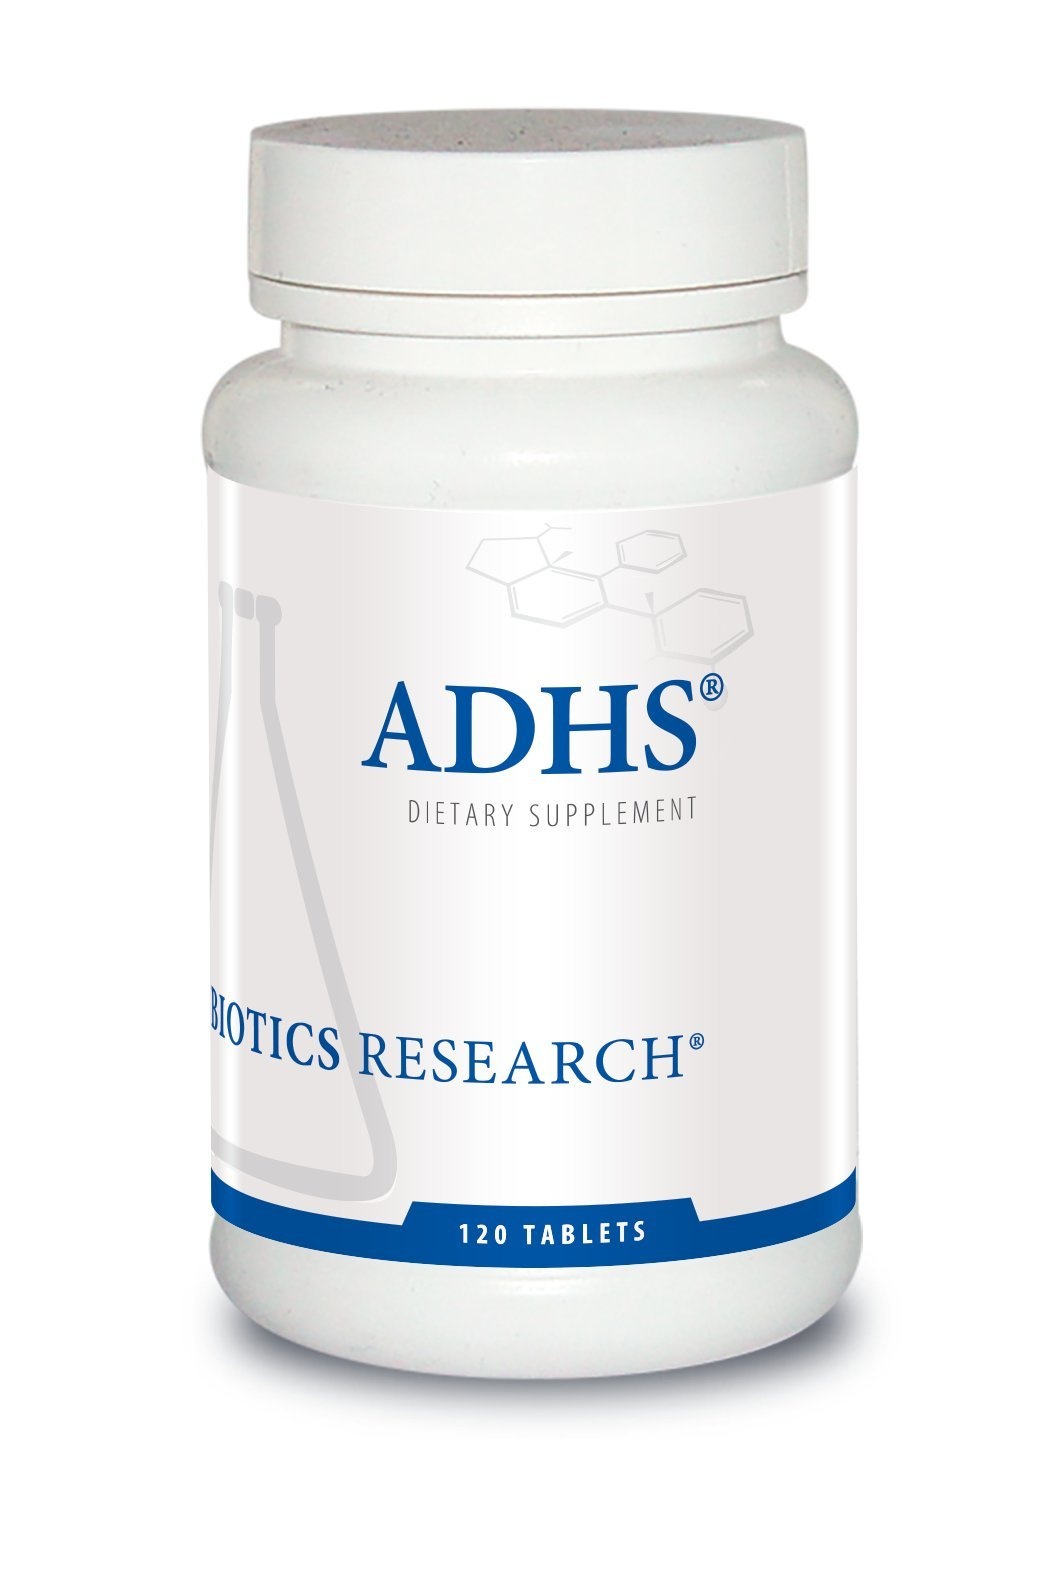 Biotics Research ADHS – Adrenal Support, Supports Normal Cortisol Levels, Antioxidant Support, More Energy, Healthy Response, 120 Tabs